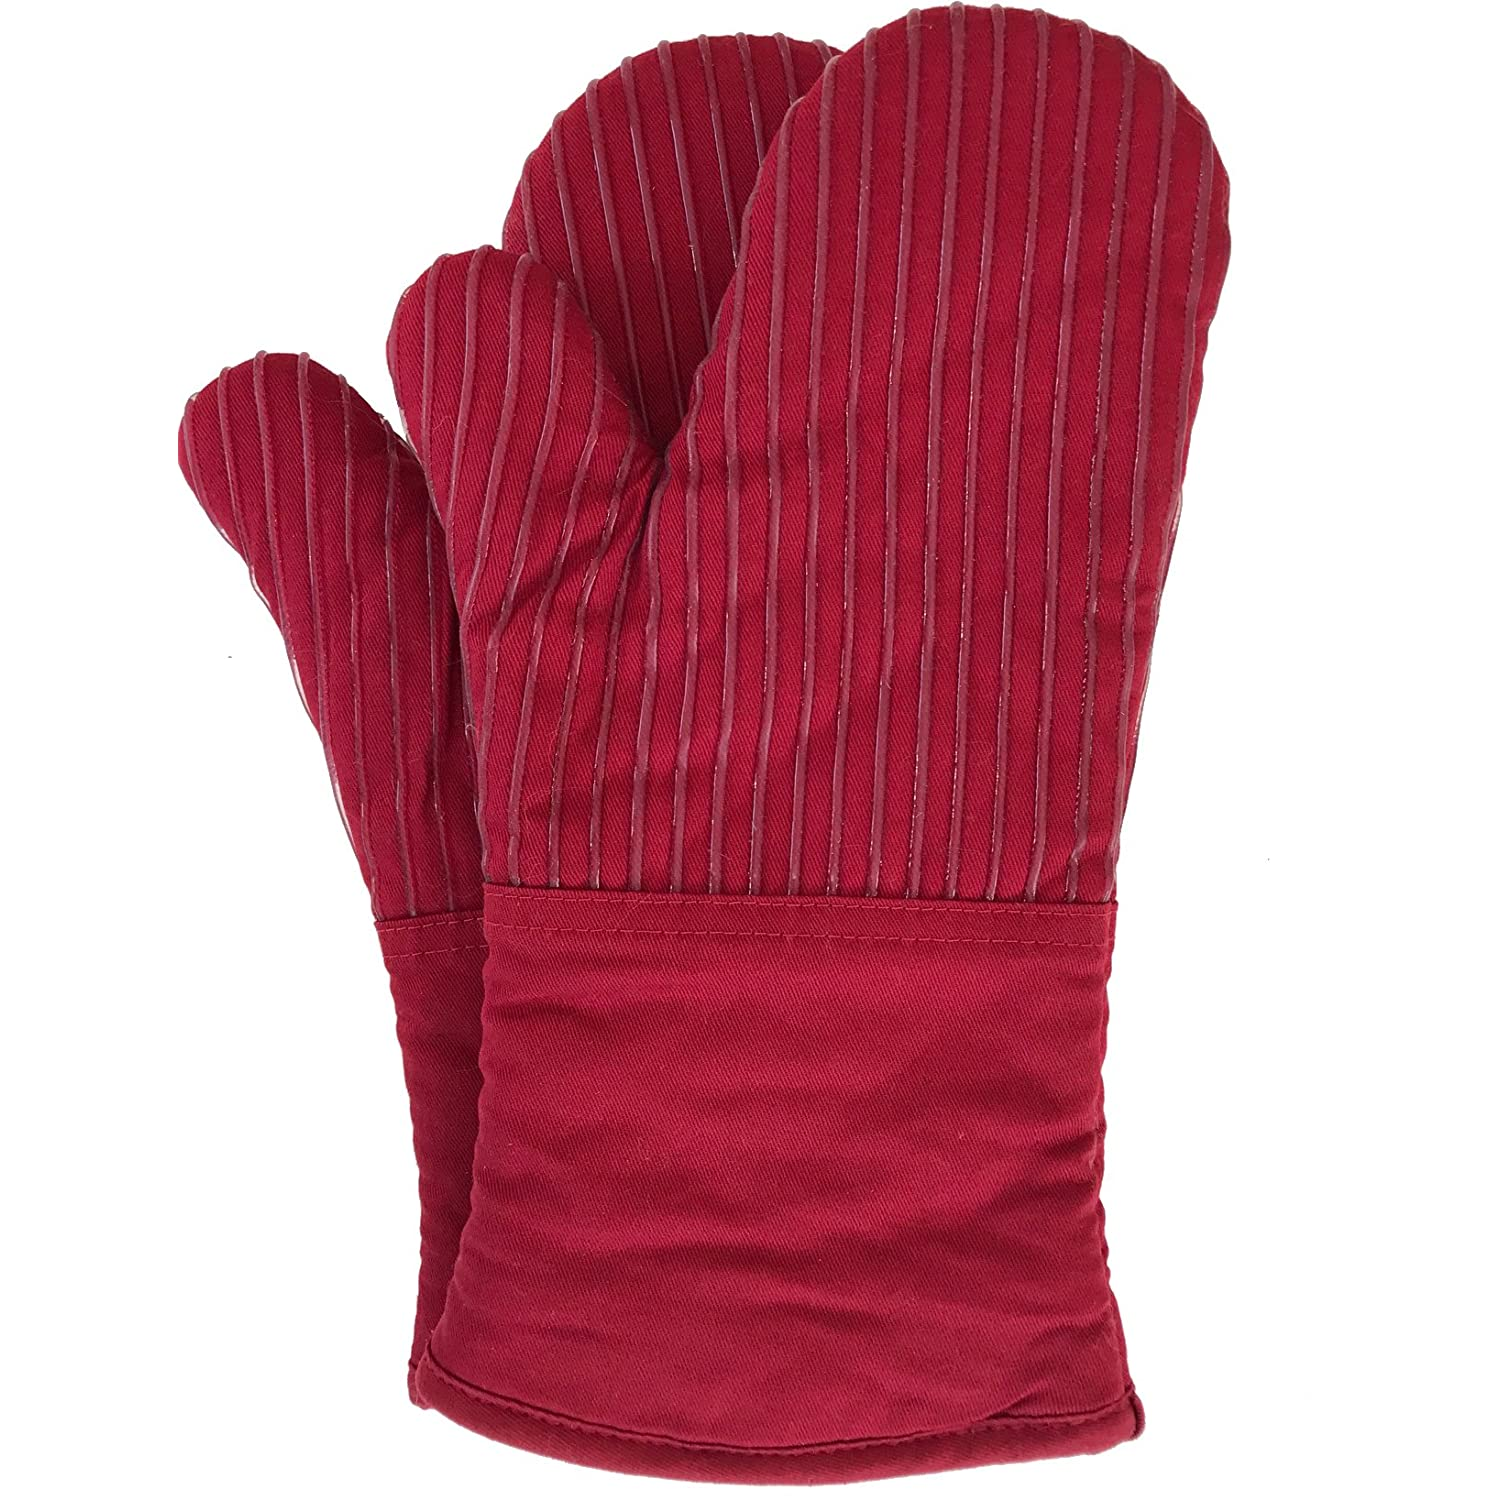 Big Red House Oven Mitts Review